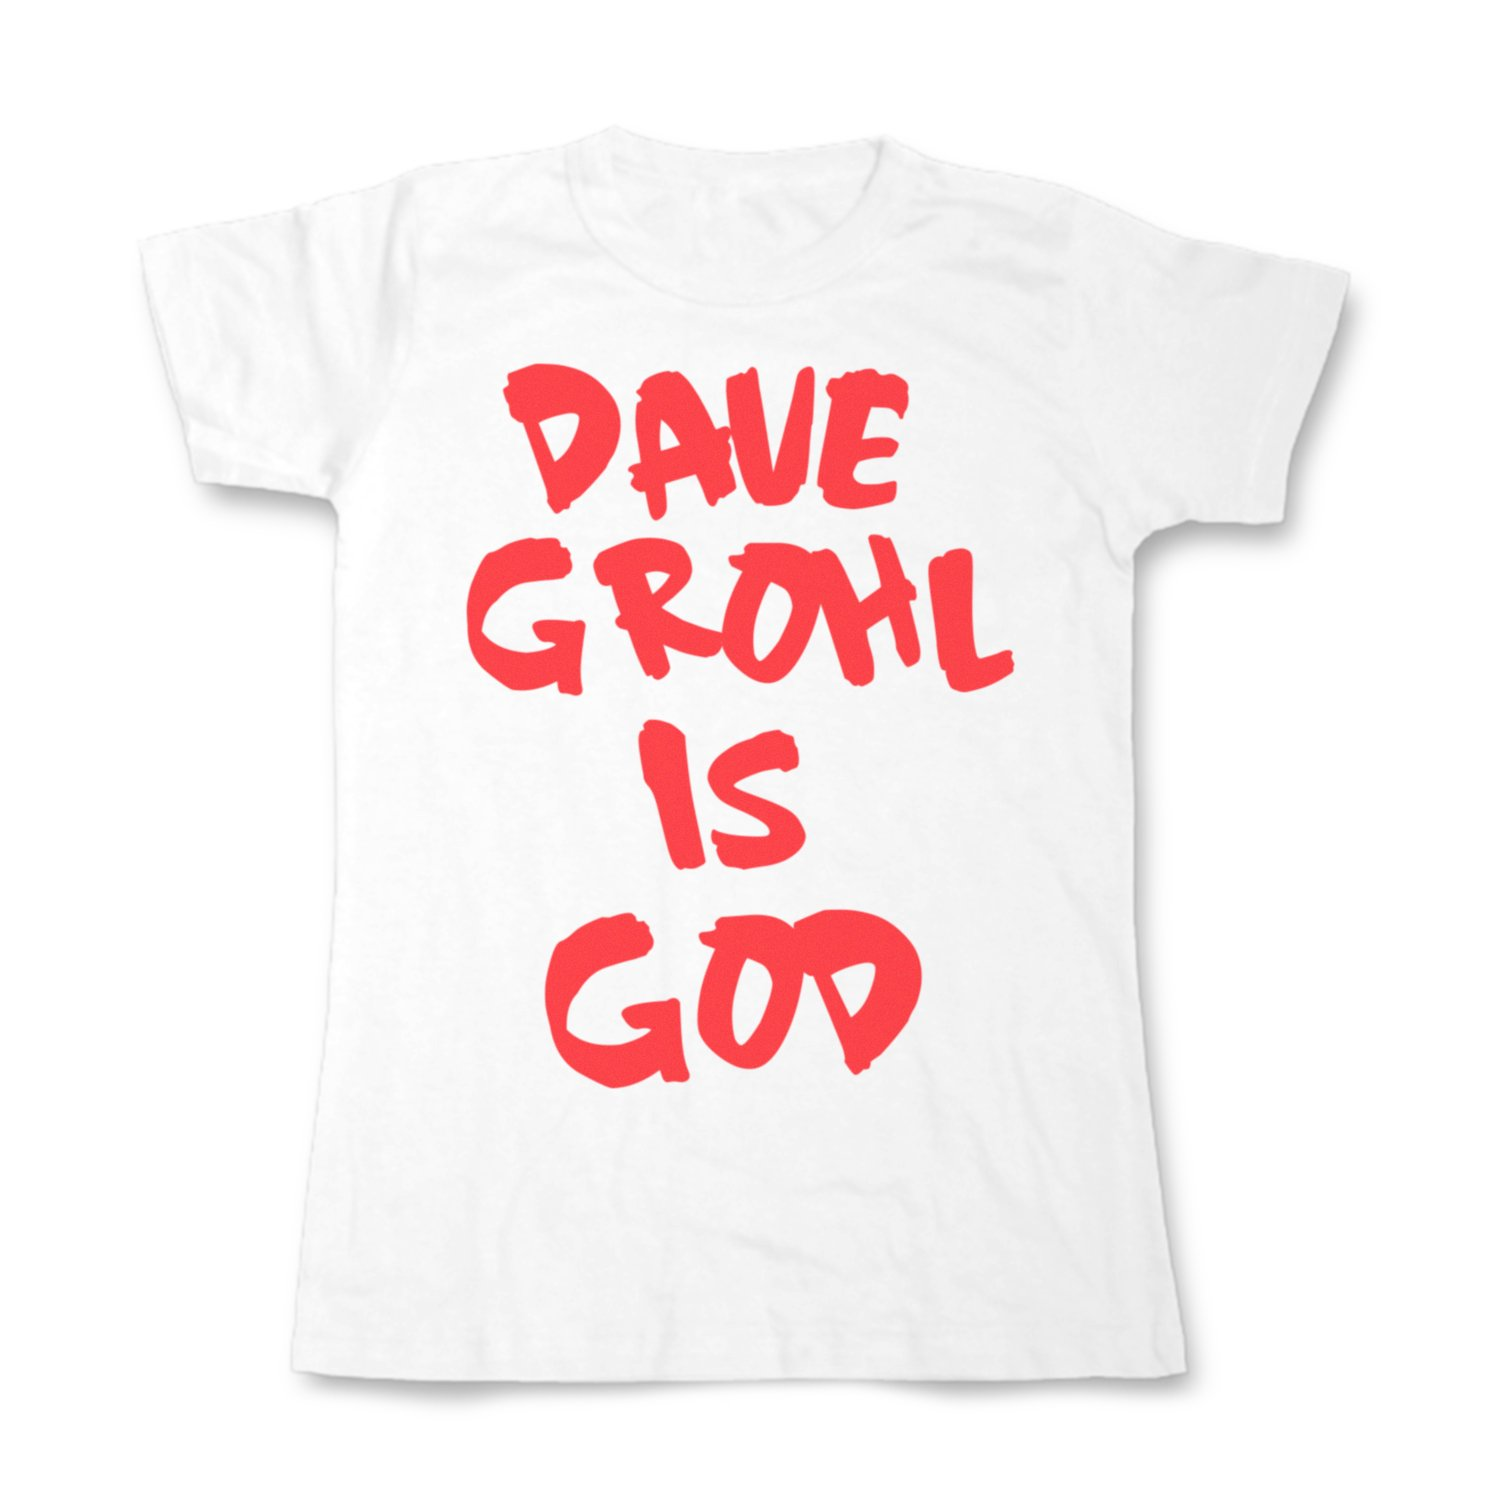 Dave Grohl Is God Ladies Fit All Sizes 100 Shirts